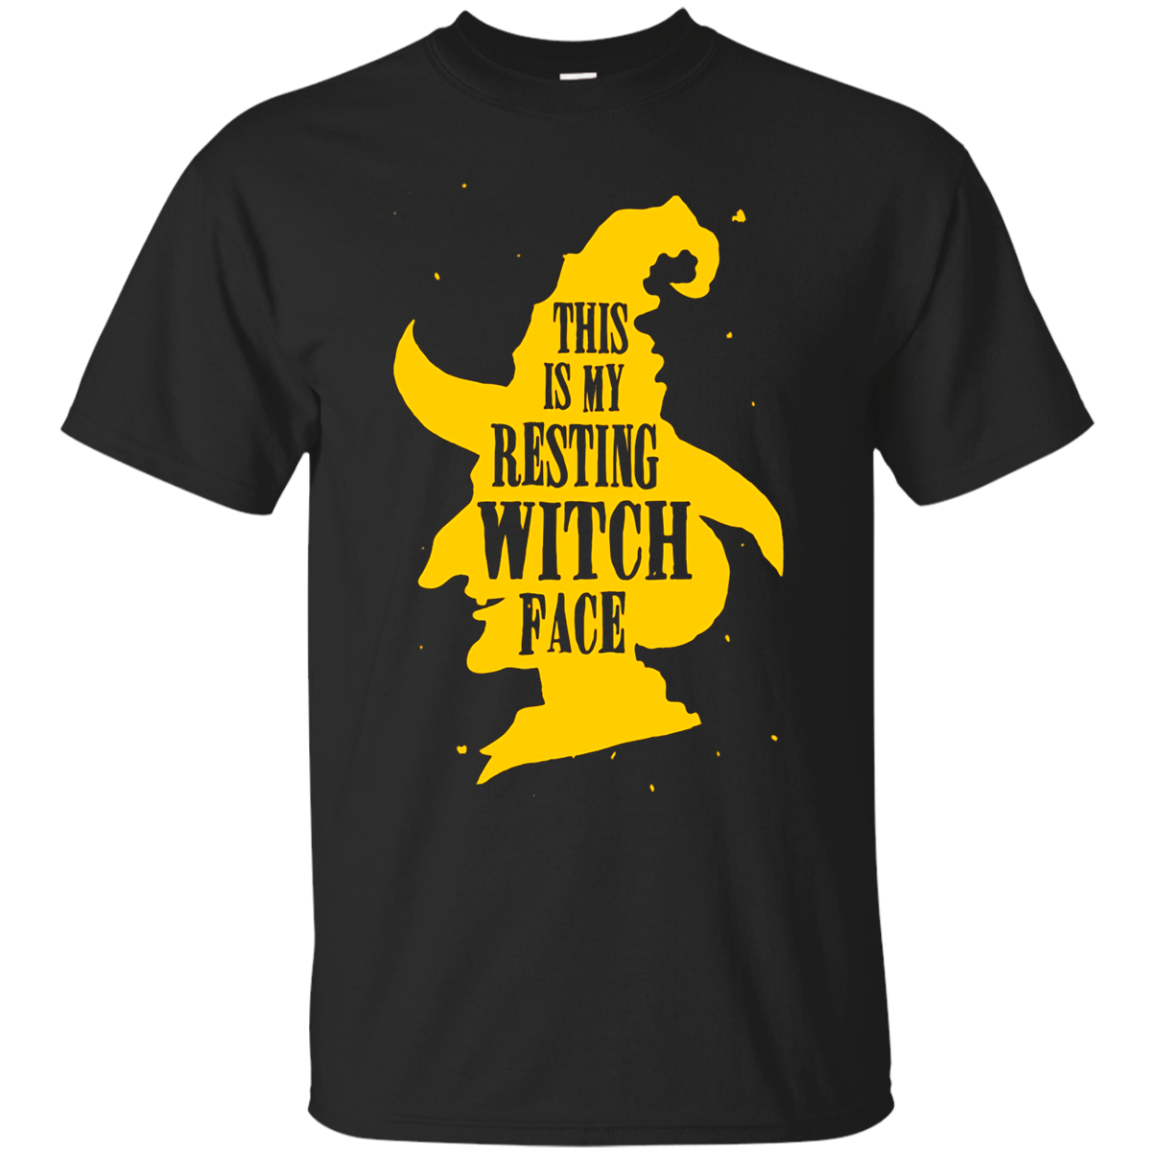 Shop Funny Halloween Witch Tshirt This Is My Resting Witch Face